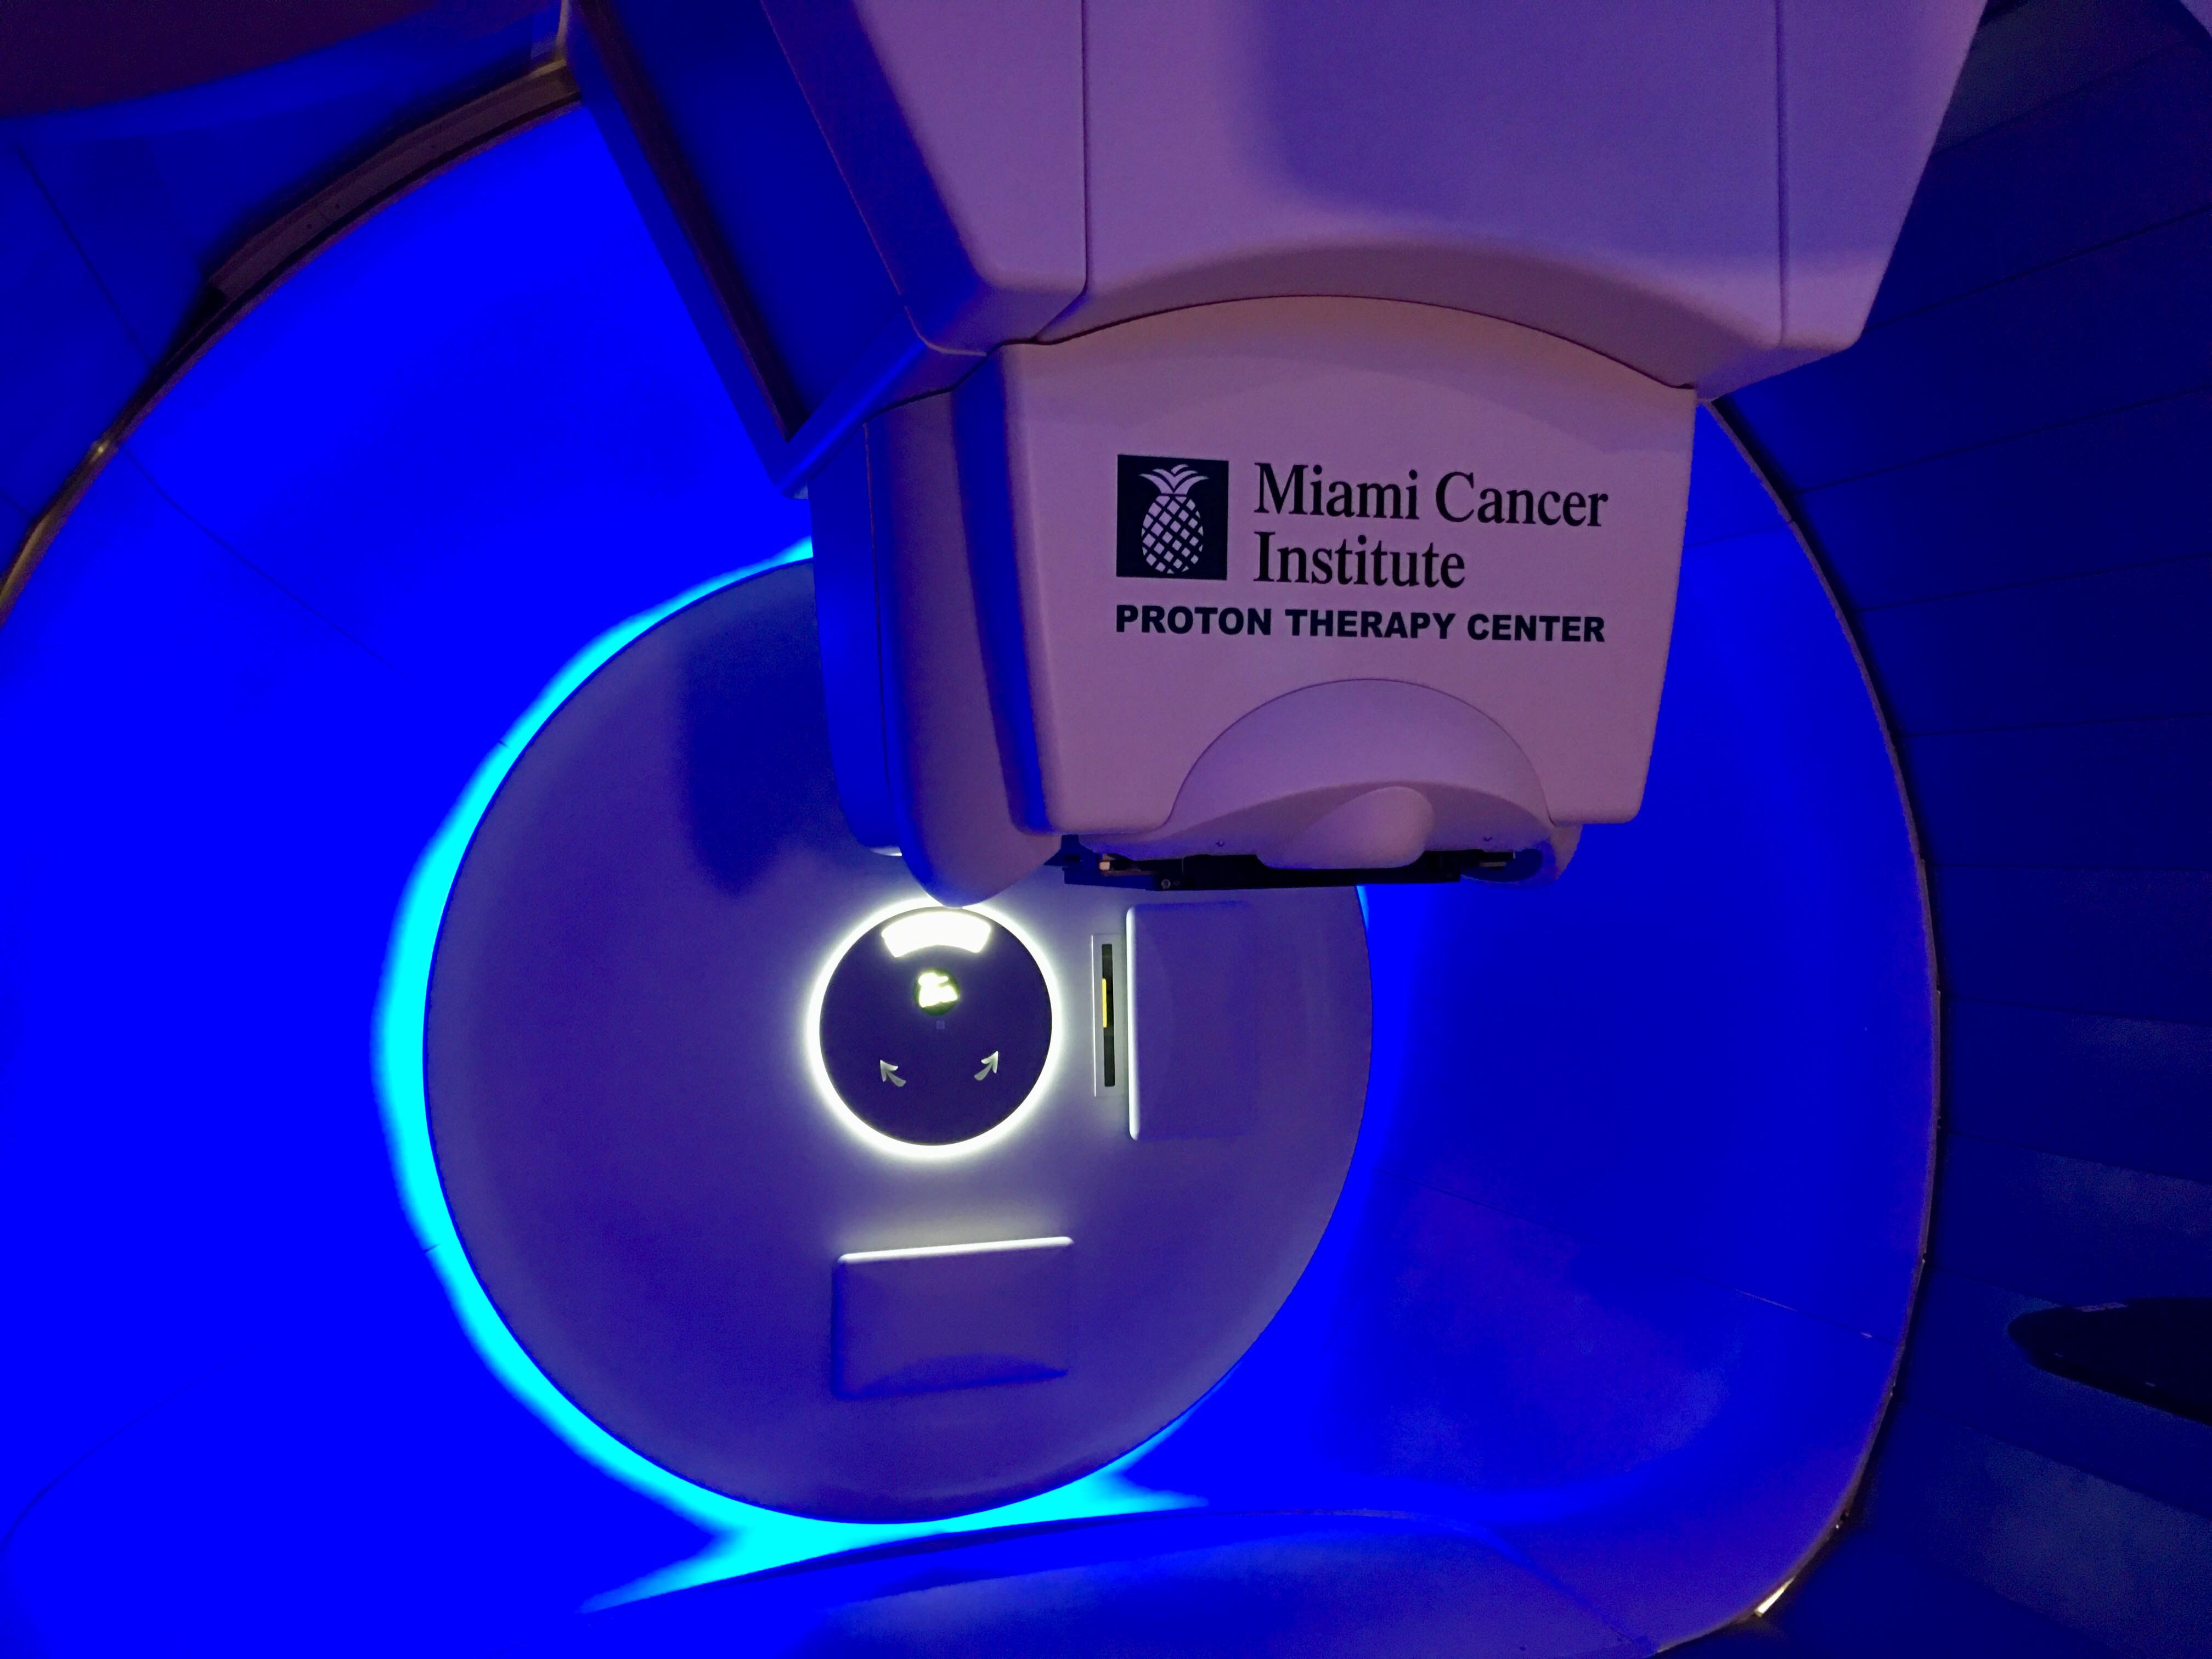 Miami Cancer Institute's Proton Therapy Center is the first in South Florida and the region's top destination for this leading-edge treatment. Proton therapy is an advanced form of radiation therapy that uses pencil beam scanning (PBS) technology.